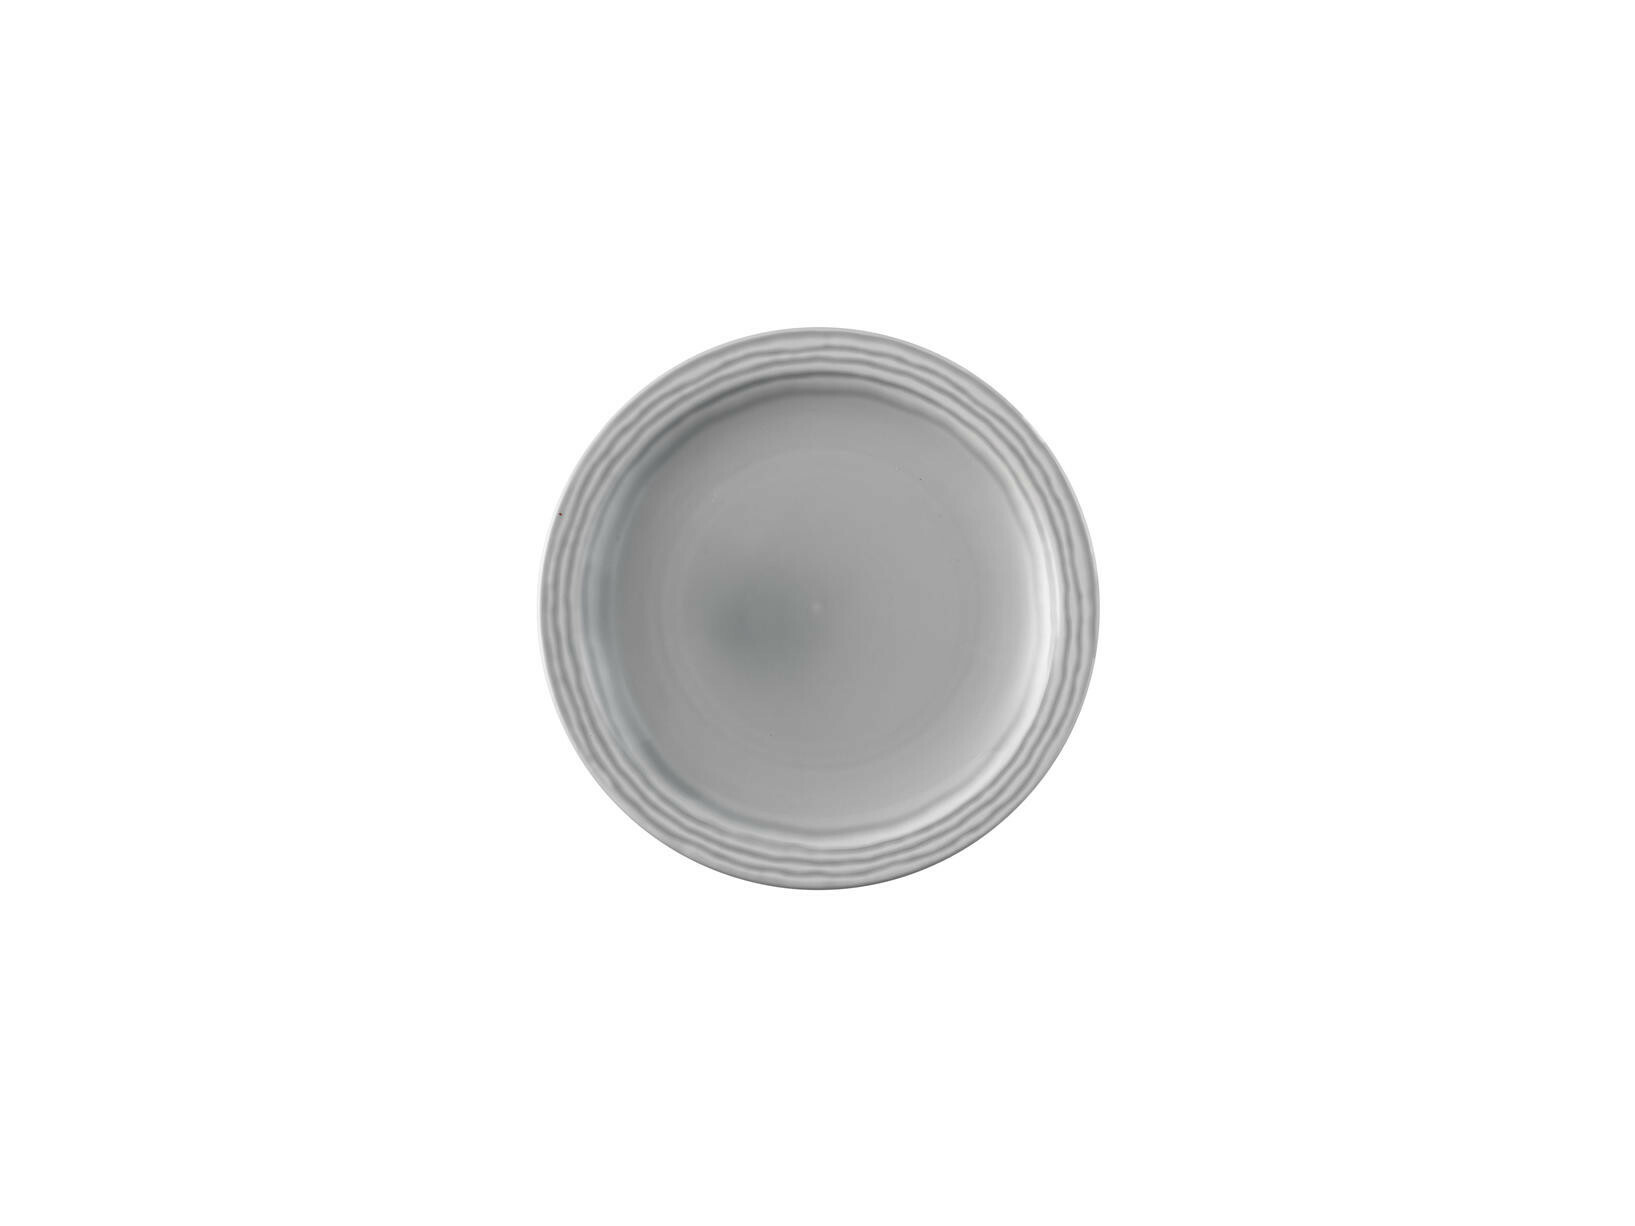 Dudson Harvest Norse Grey bord smalle rand 23 cm